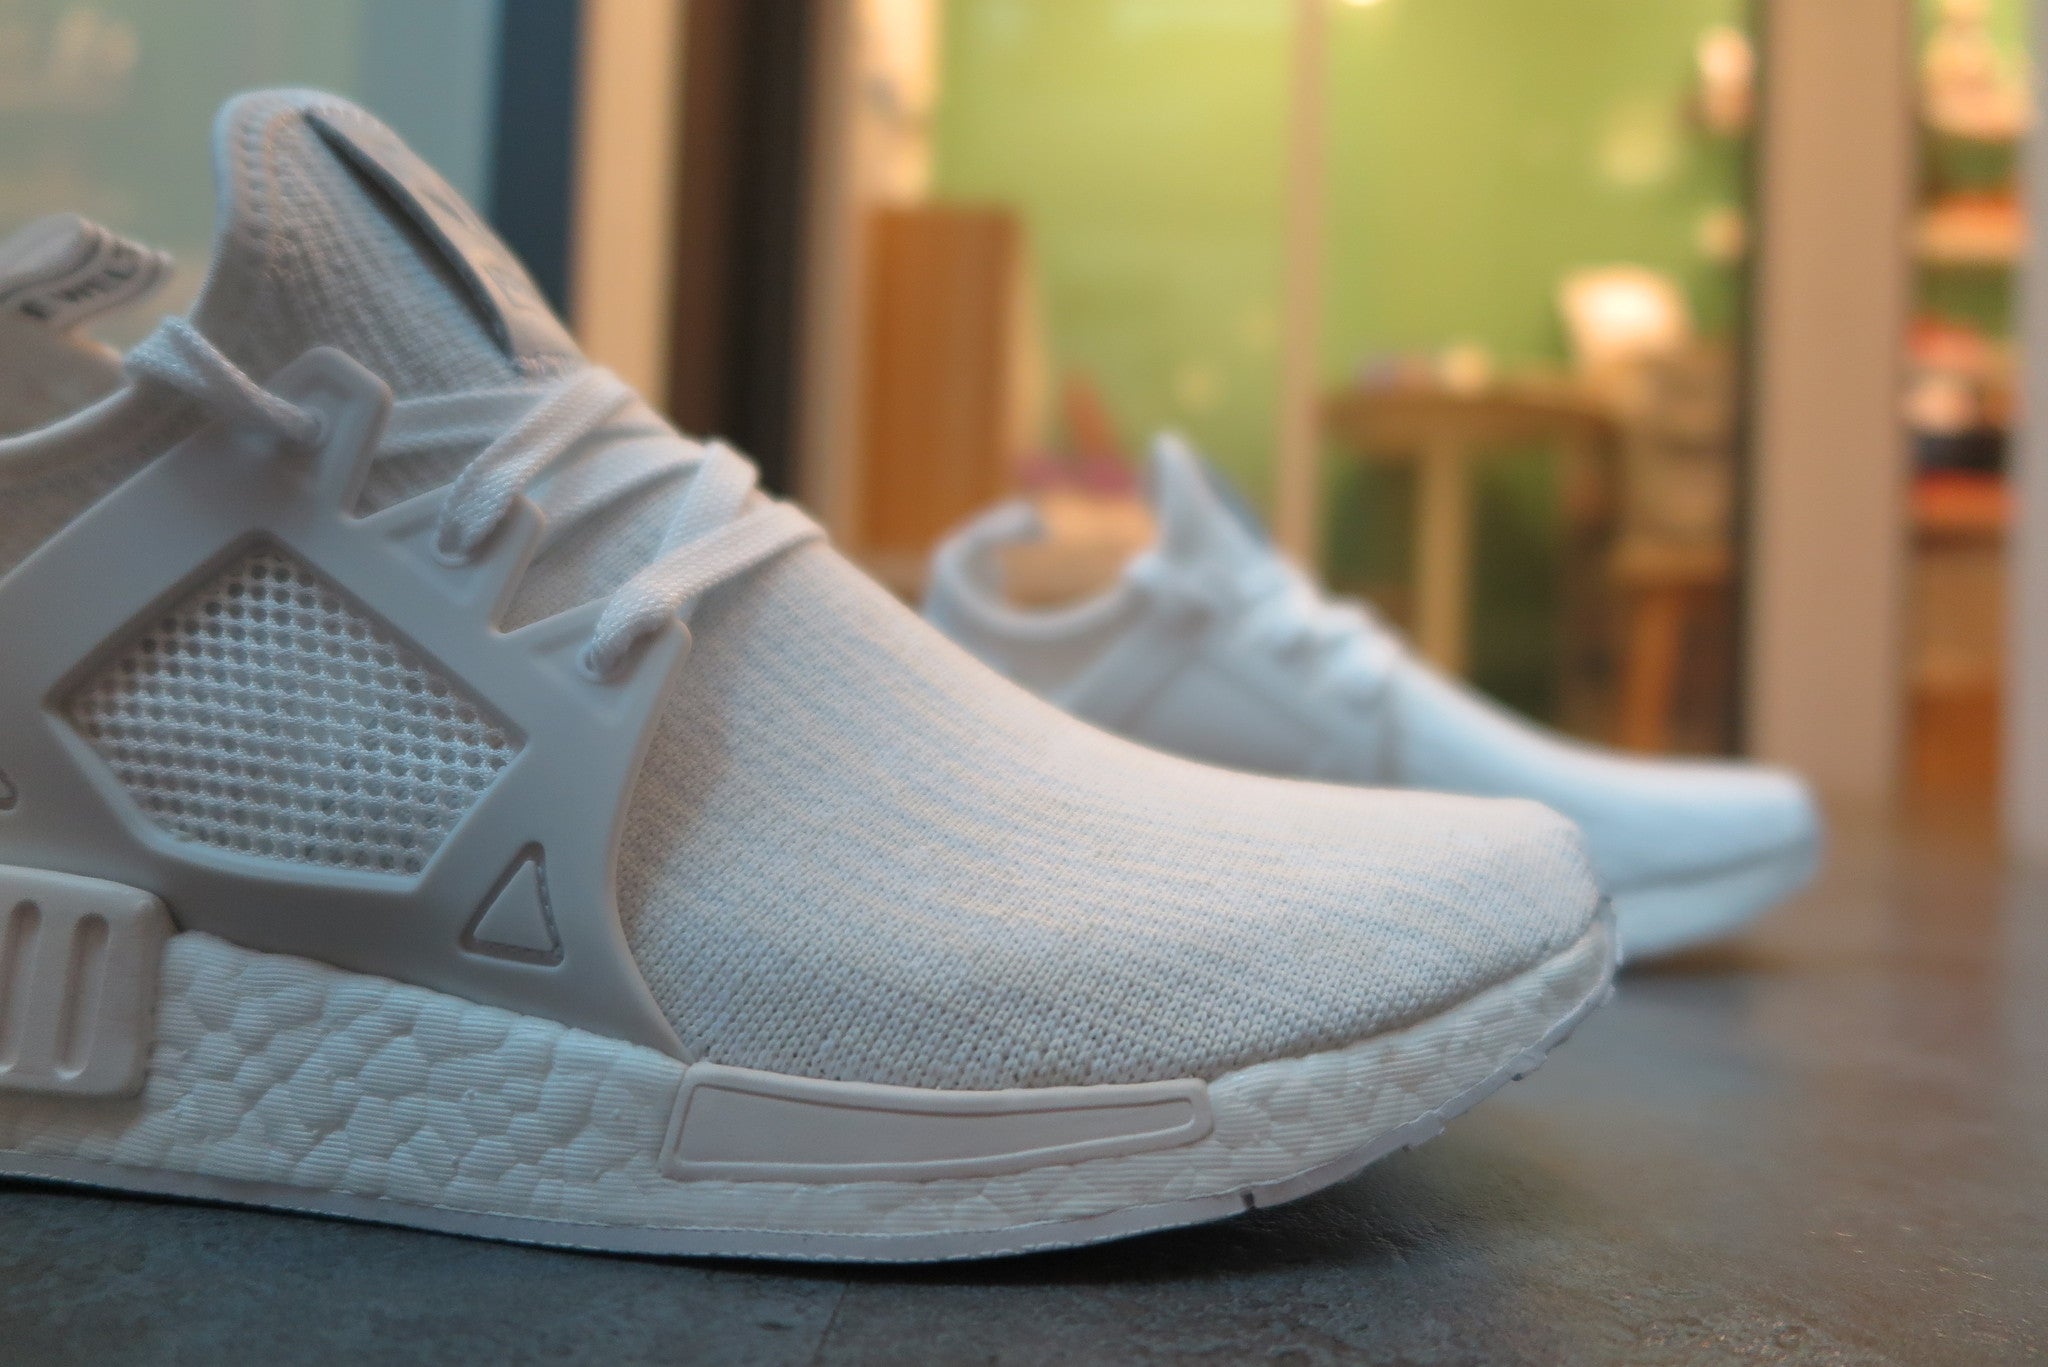 adidas NMD_XR1 Primeknit - White/Vintage White #BB1967-Sneakers-Navy Selected Shop